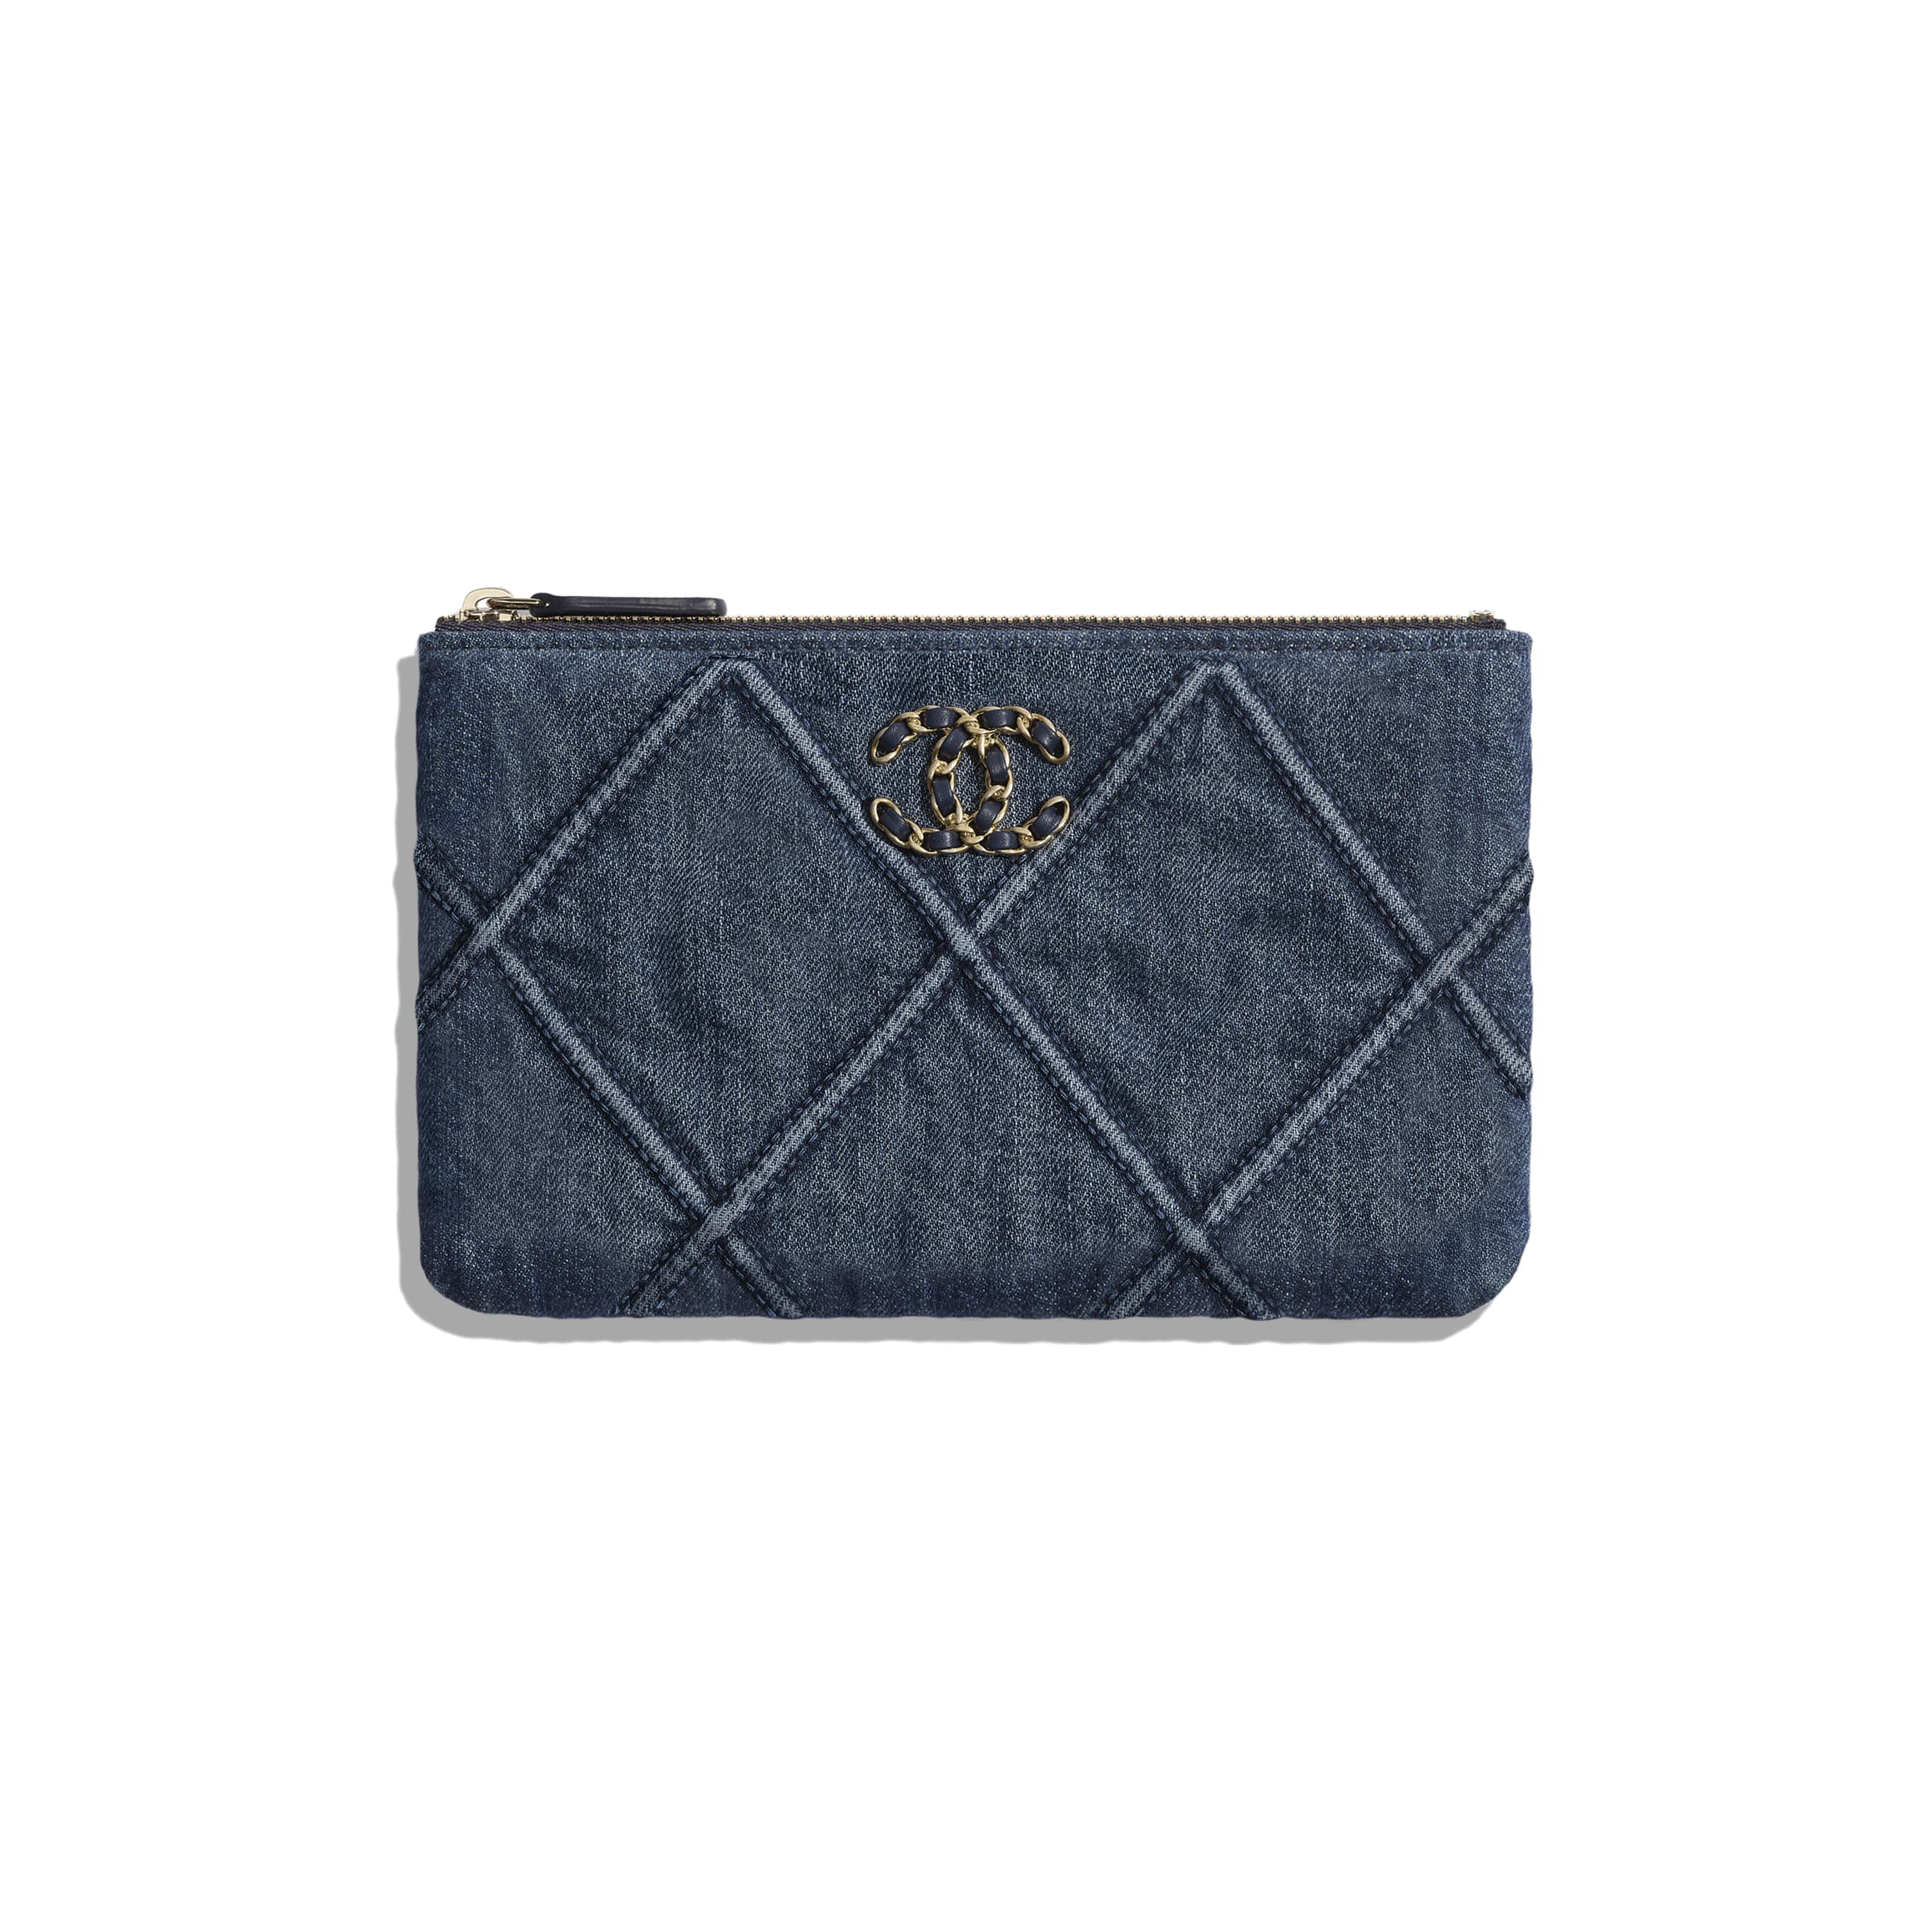 CHANEL 19 Small Pouch - Blue - Denim, Gold-Tone, Silver-Tone & Ruthenium-Finish Metal - CHANEL - Default view - see standard sized version